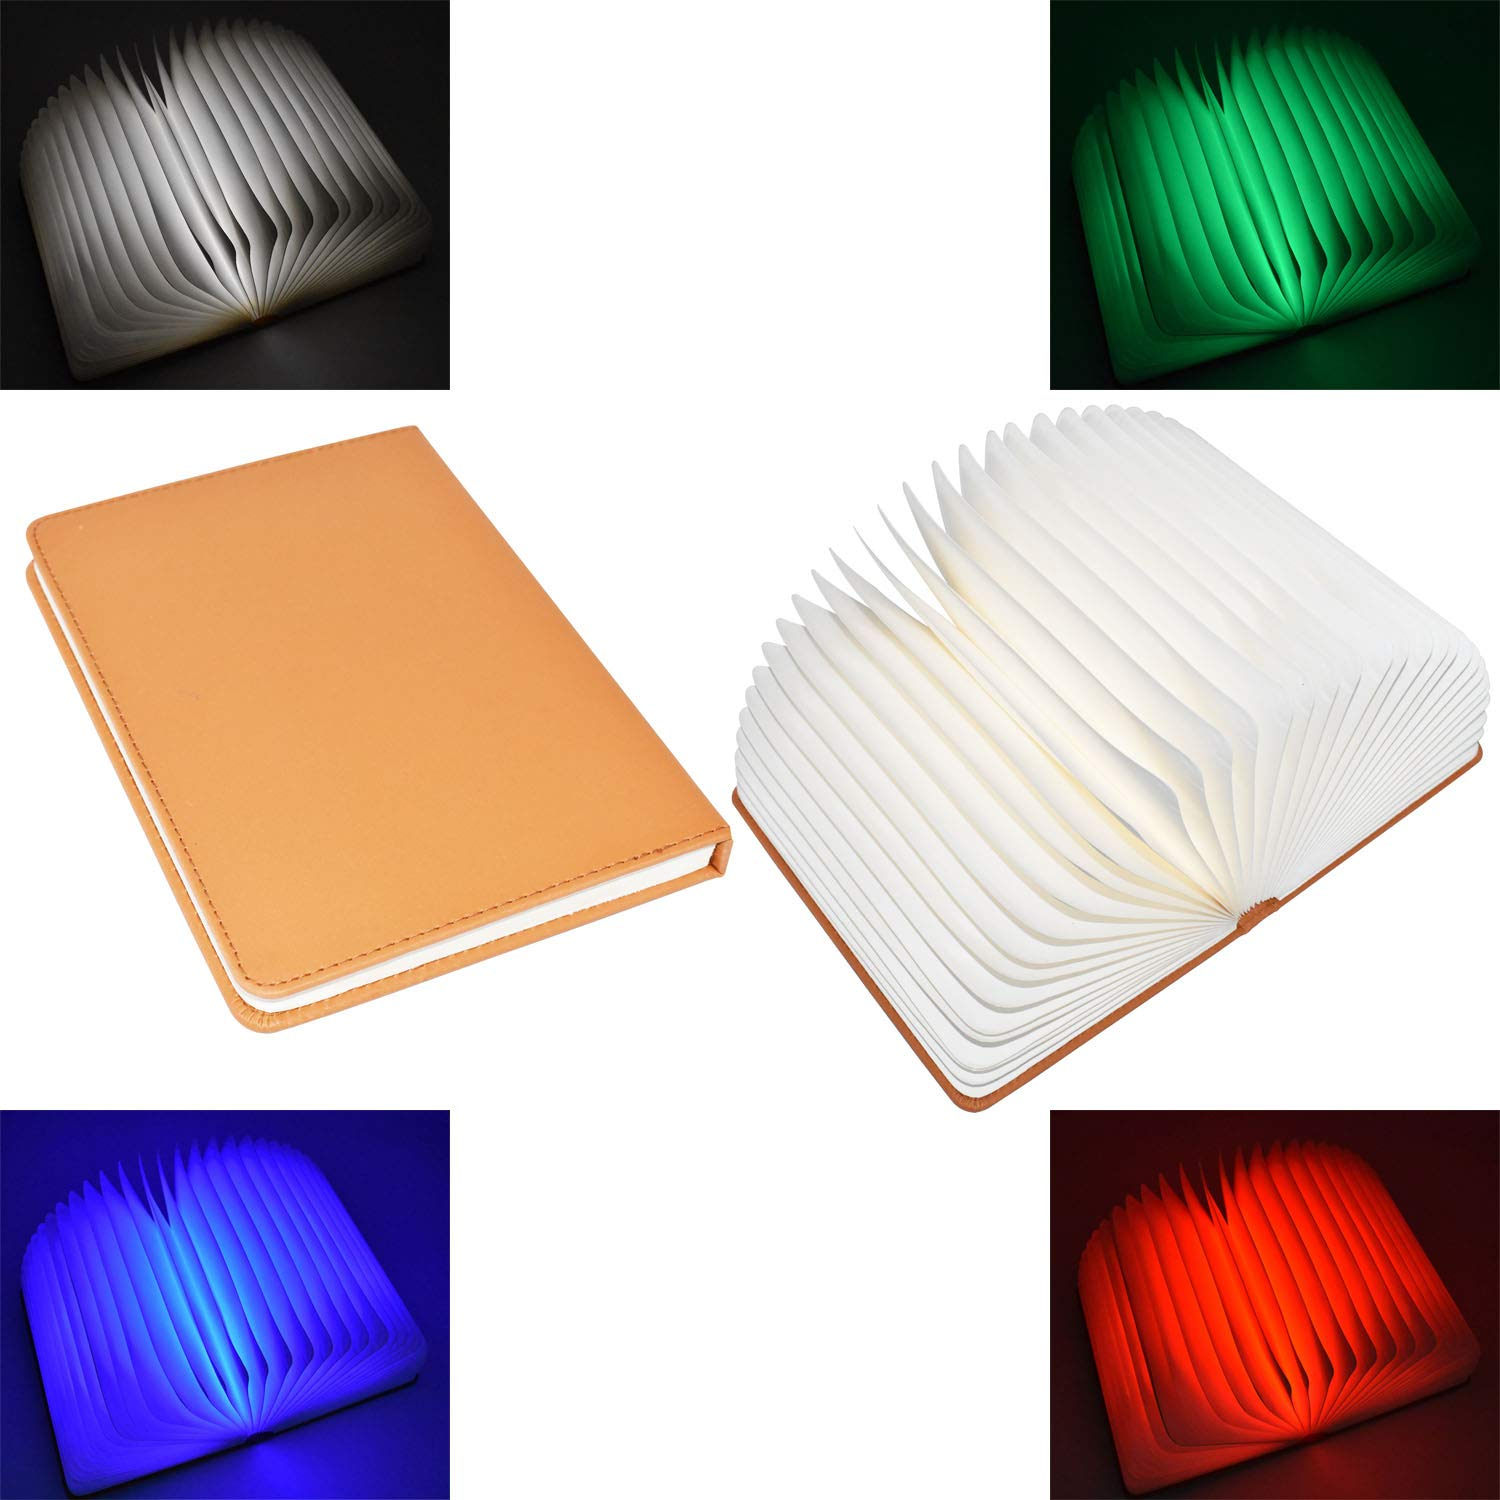 4 Colors Folding LED Book Light Lamp USB Rechargable 2000mah Night Lights for Desk Table Wall Bed Living Room Decor Magnetic Lamp Best Gift for Birthday Wedding Holiday Lovers Book Lover Family Friend